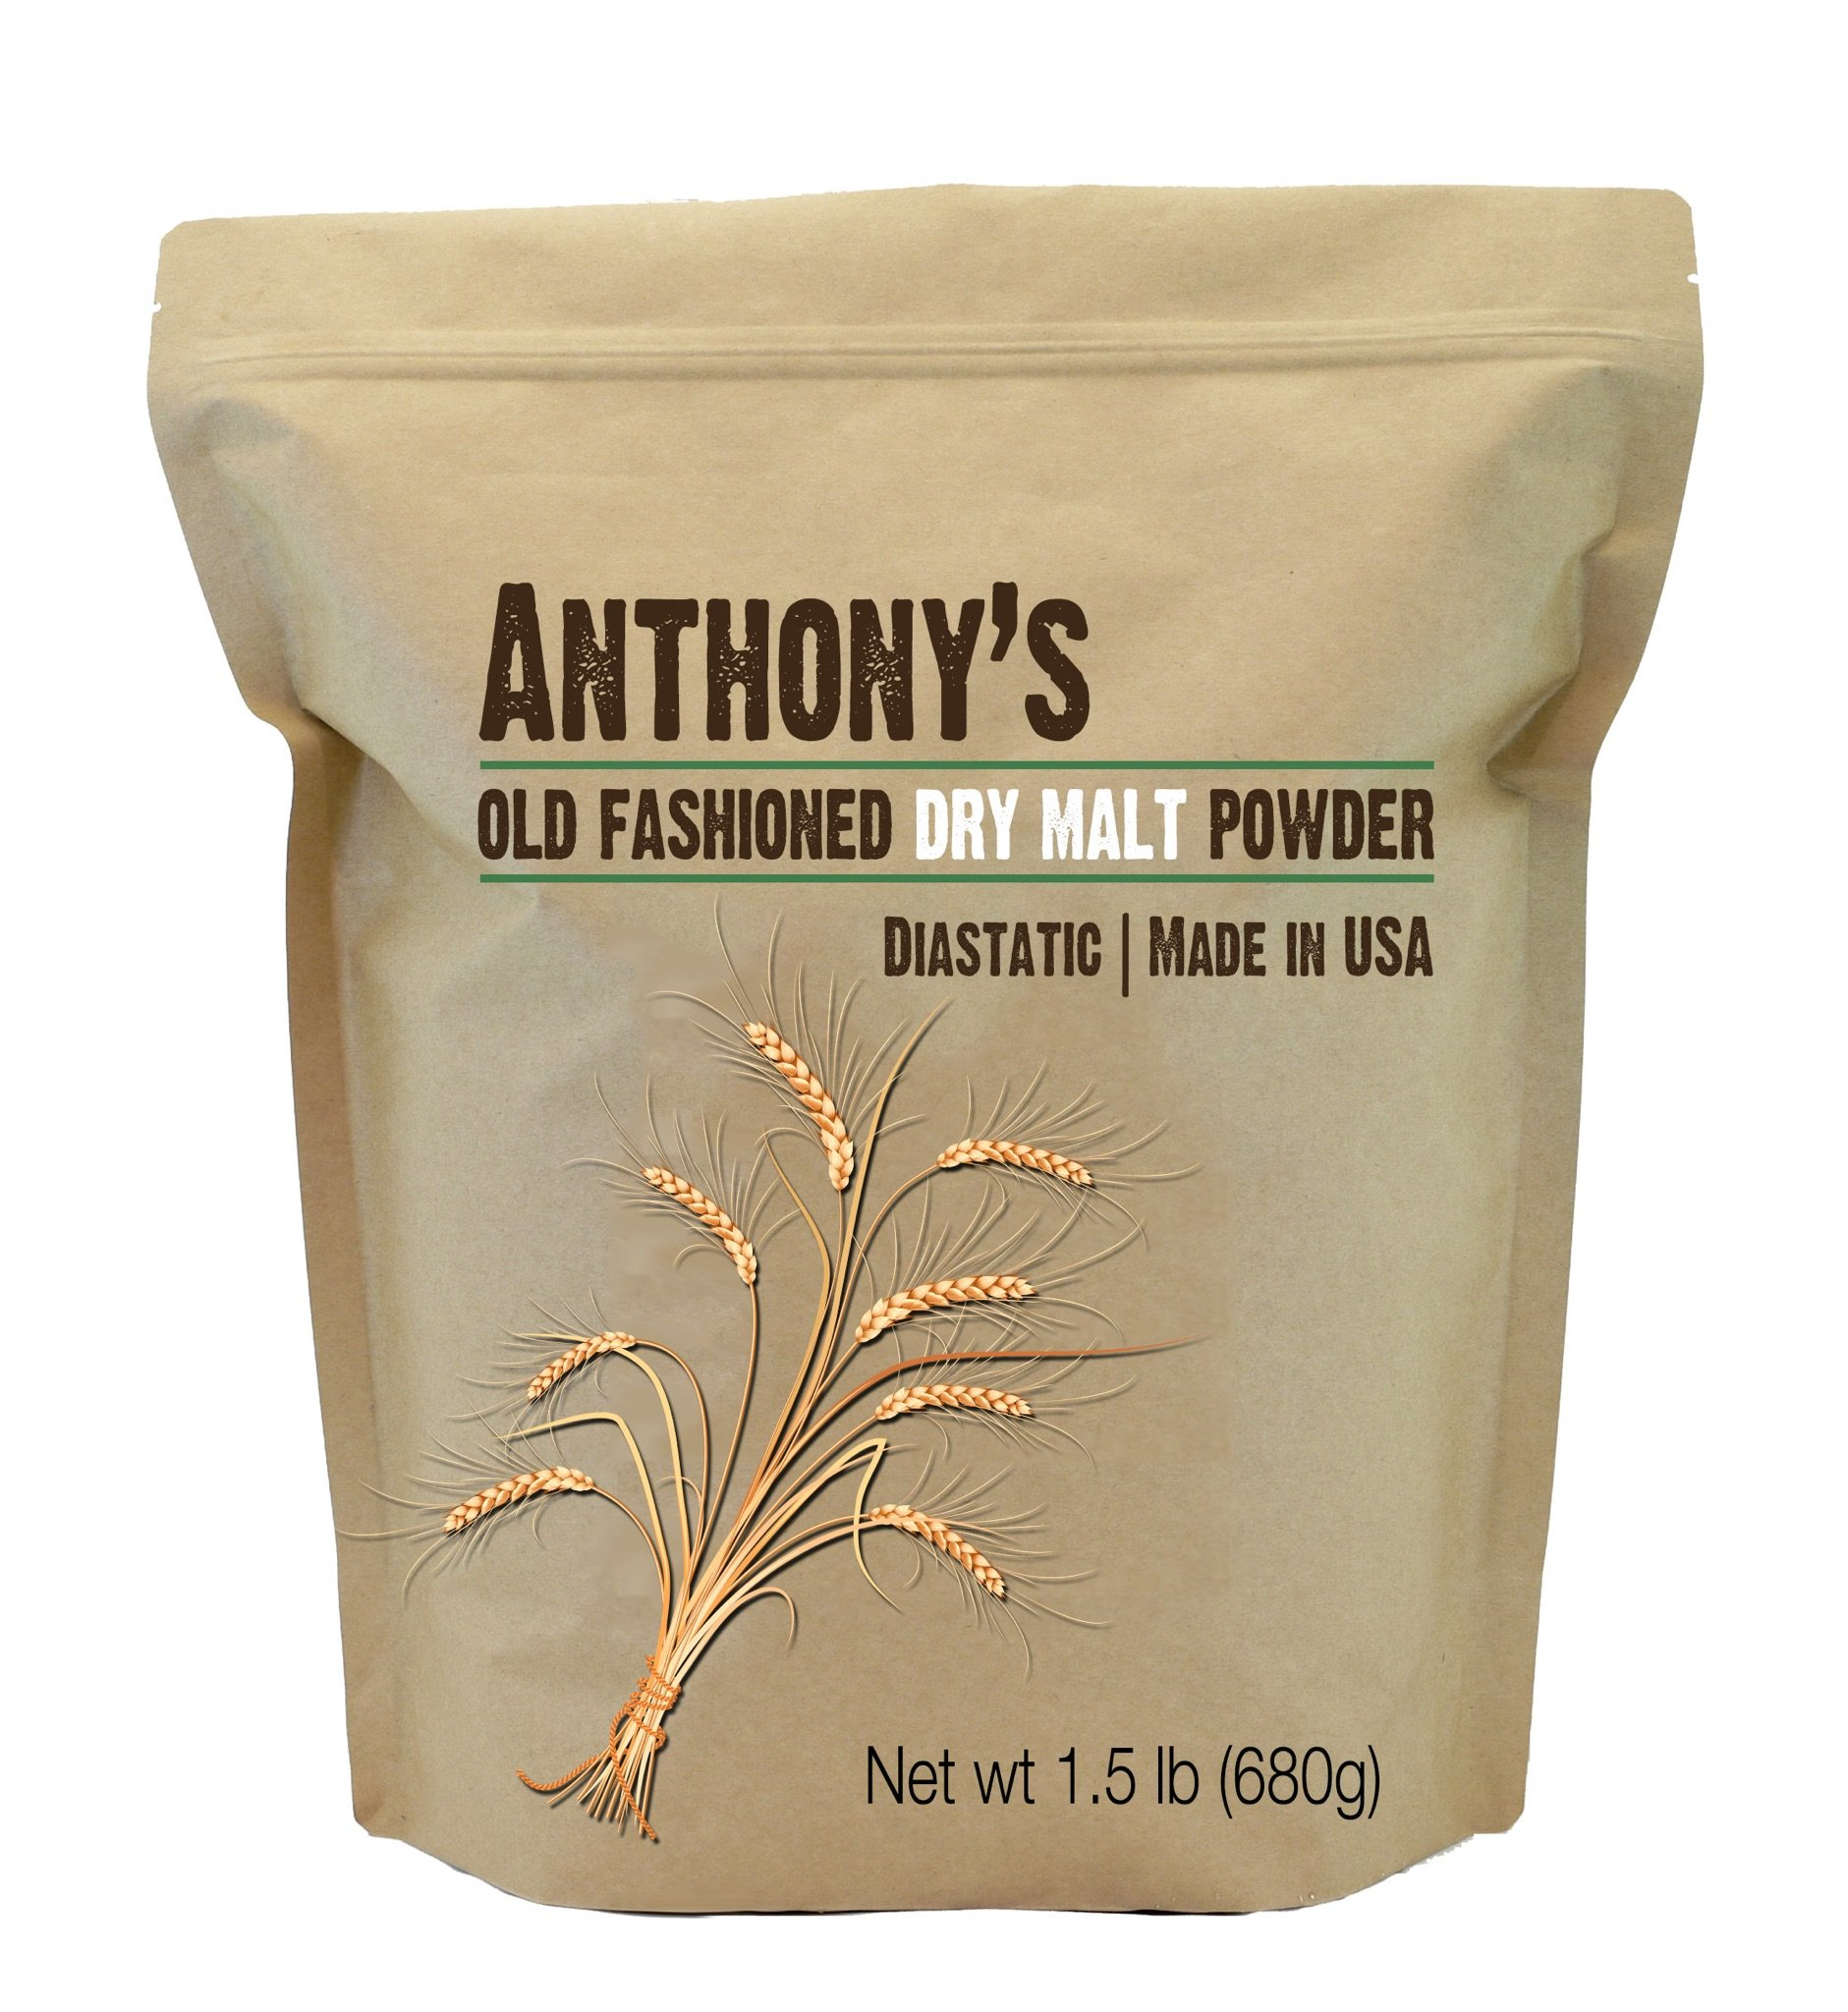 Dry Malt Diastatic Baking Powder (1.5lbs) by Anthony's, Made in the USA (1.5 Pounds)